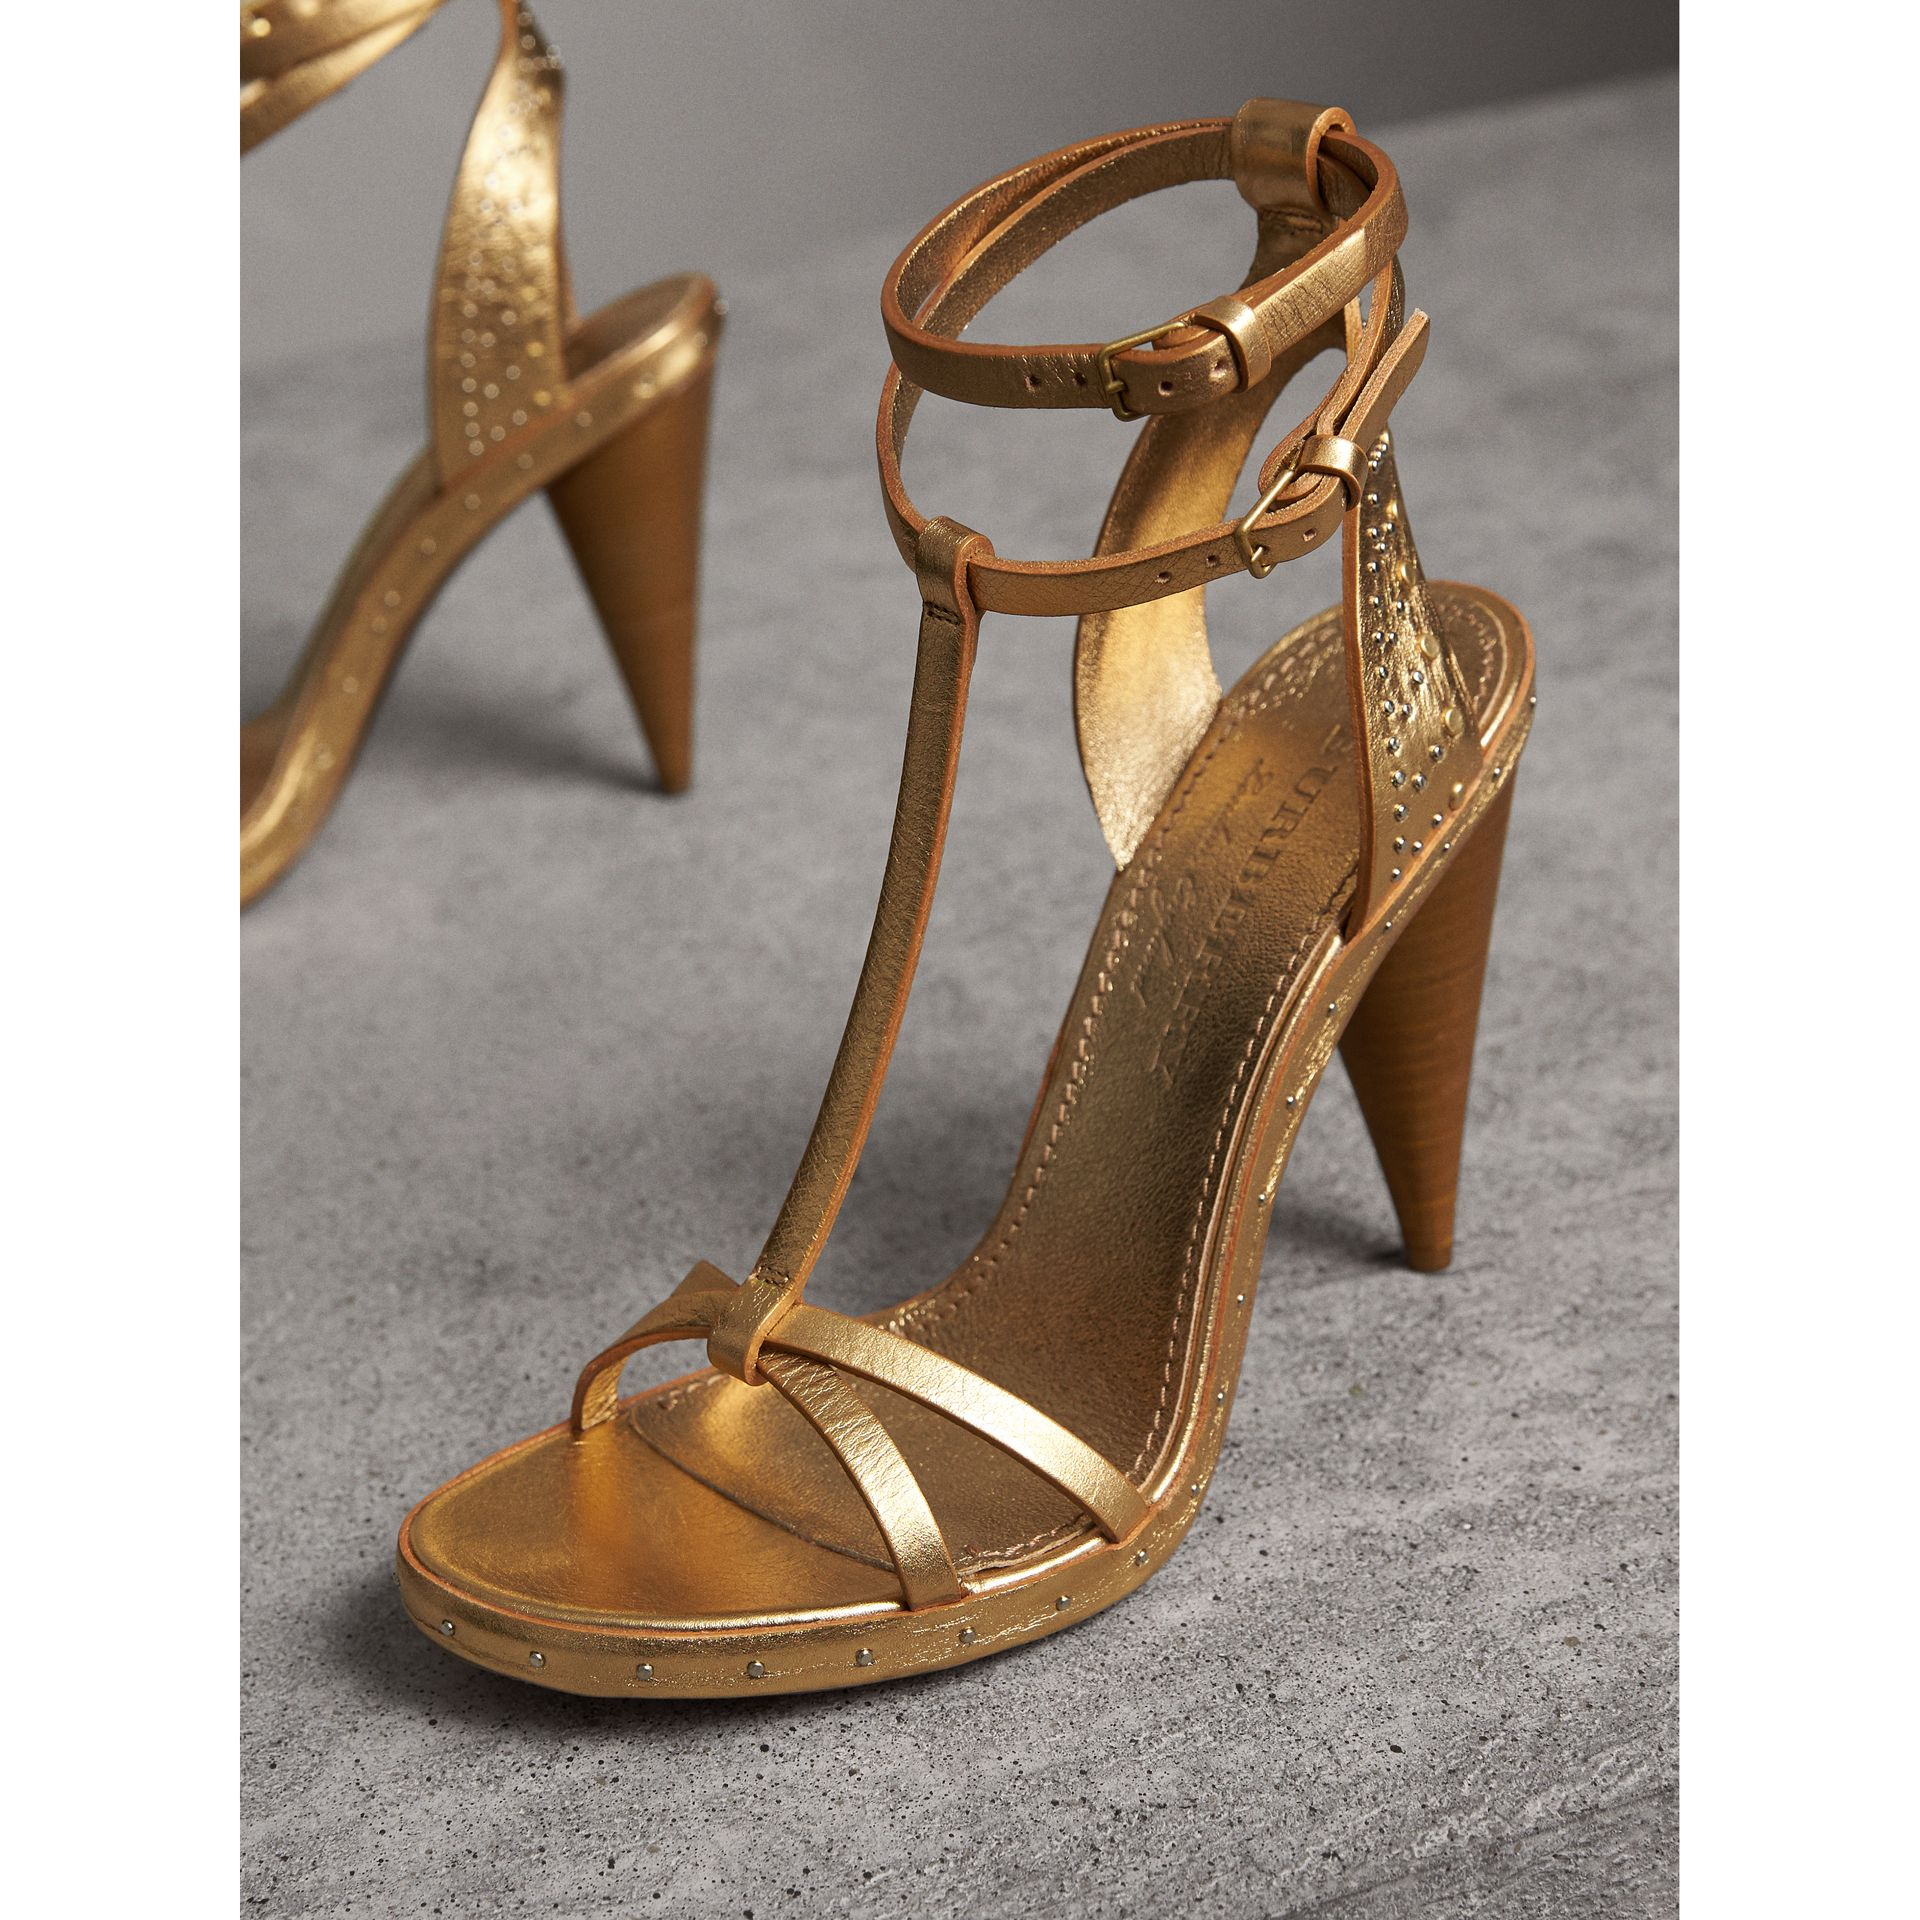 Riveted Metallic Leather High Cone-heel Sandals in Gold | Burberry Australia - gallery image 4